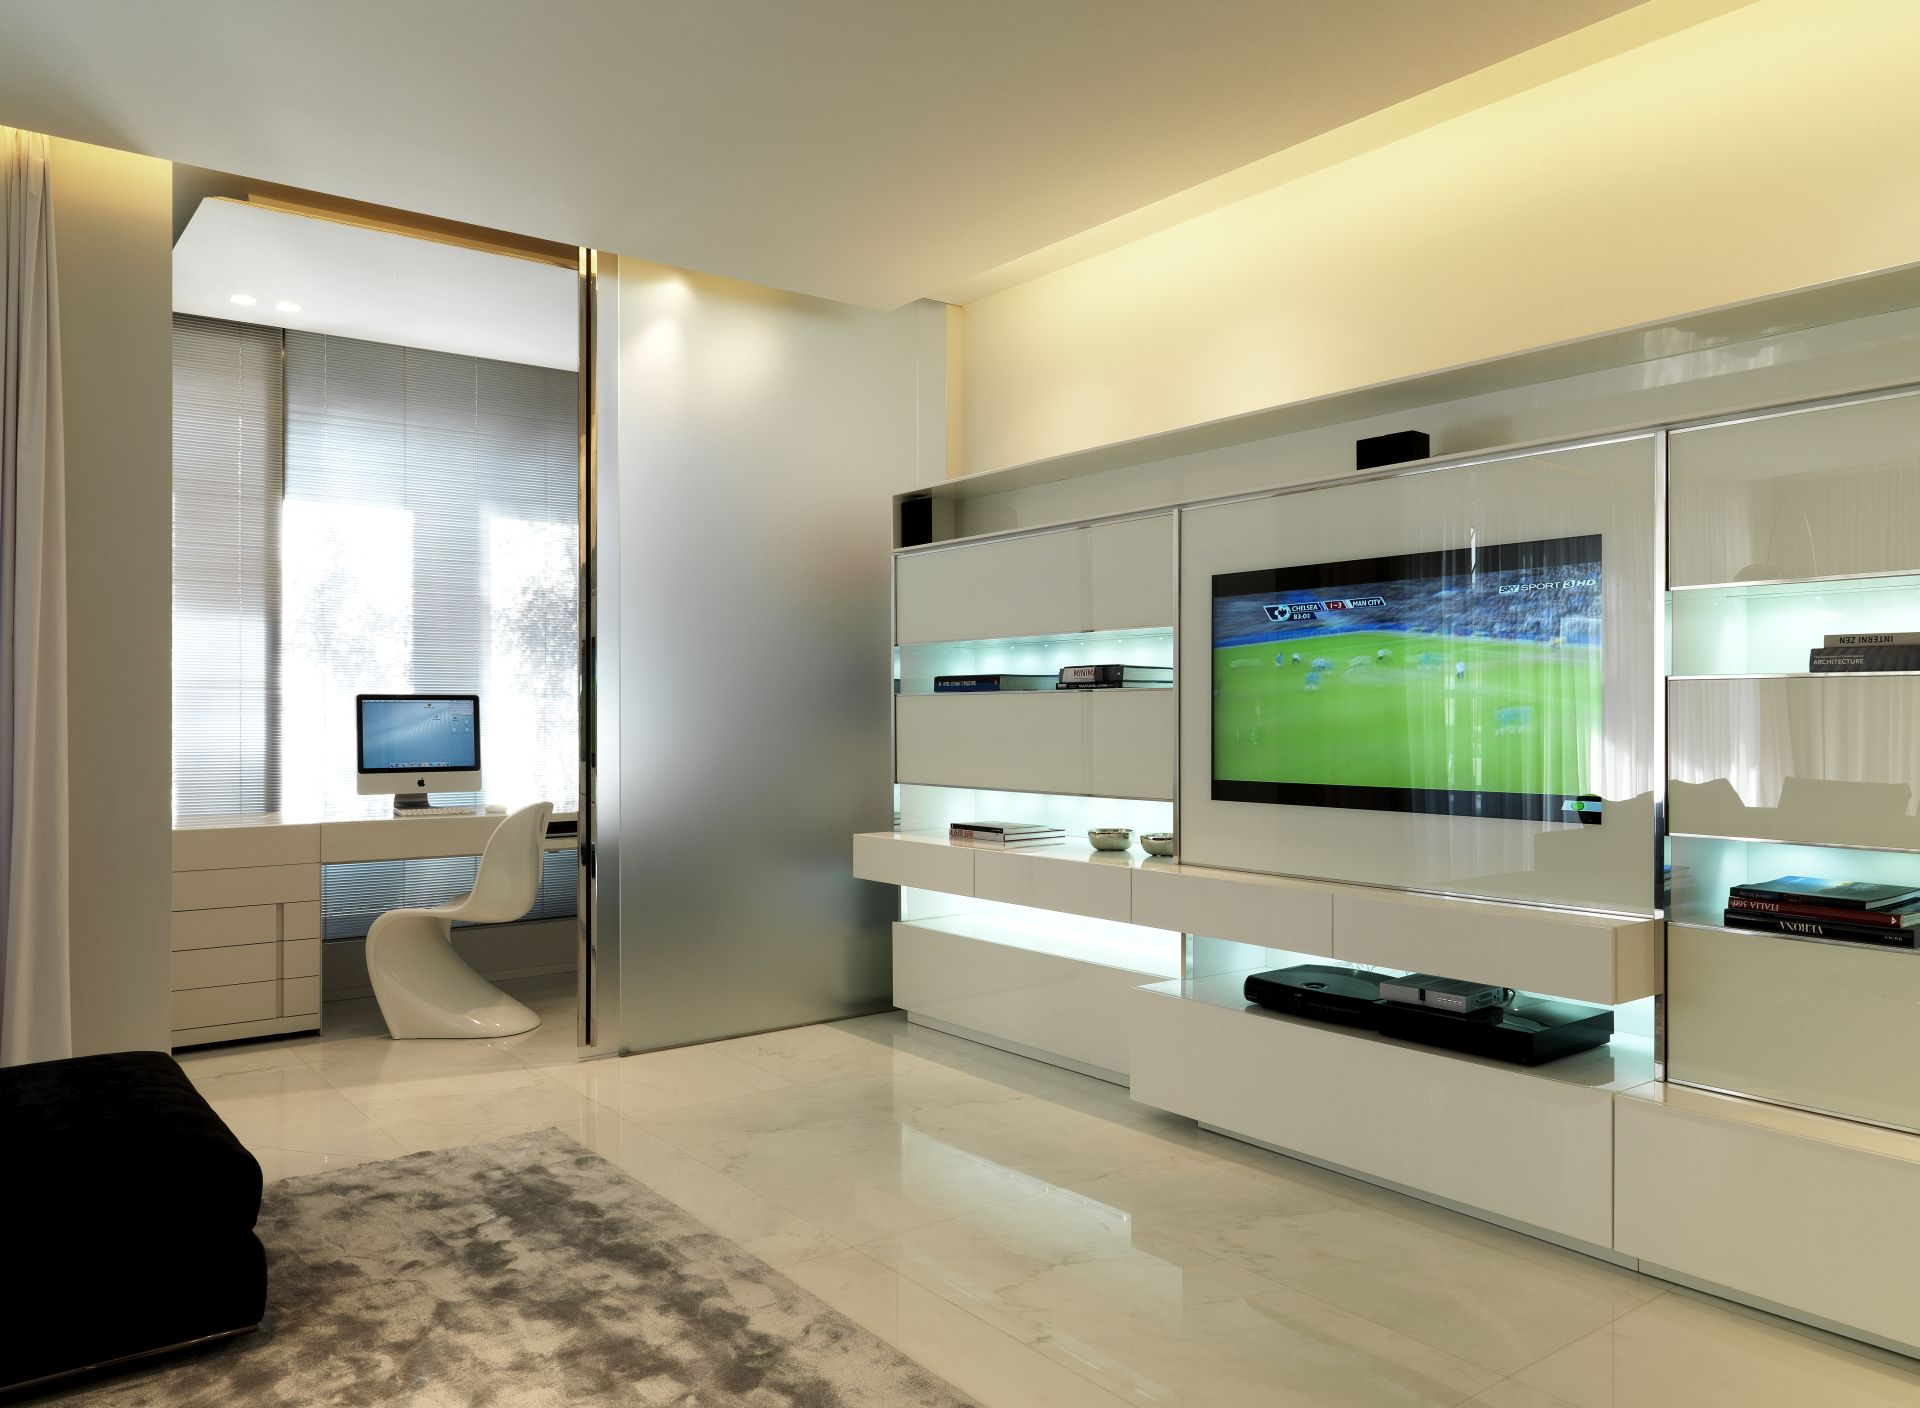 The large flat screen TV shows a football match. Here, watching a game is a favourite past-time.